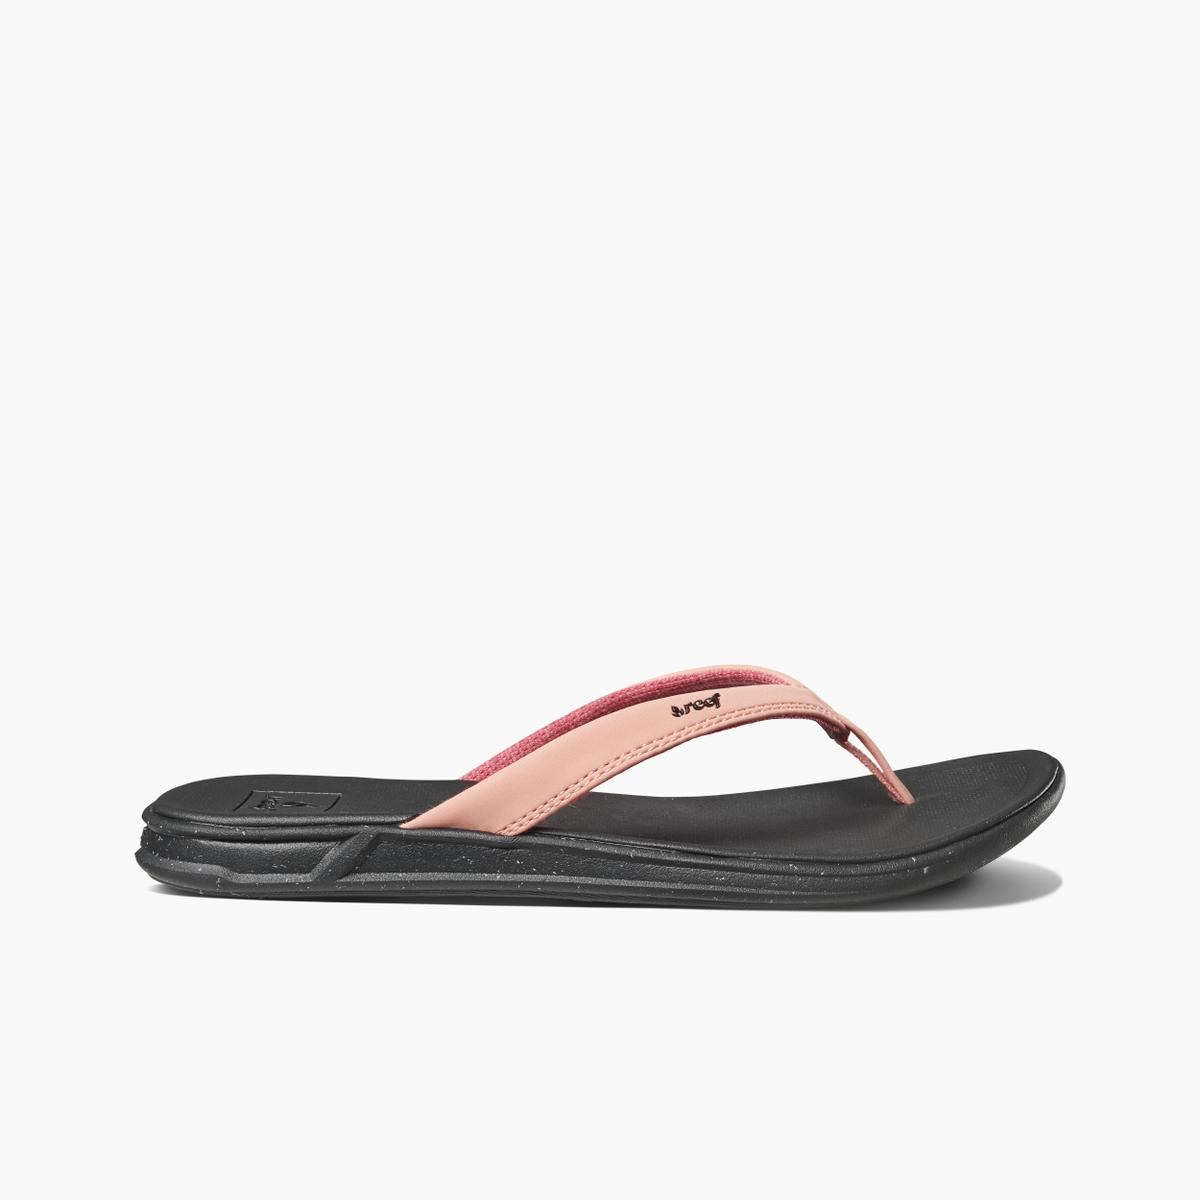 d22e3de6ab62 Women s Reef Rover Catch Pop Sandals - Bright Coral – Gazelle Sports